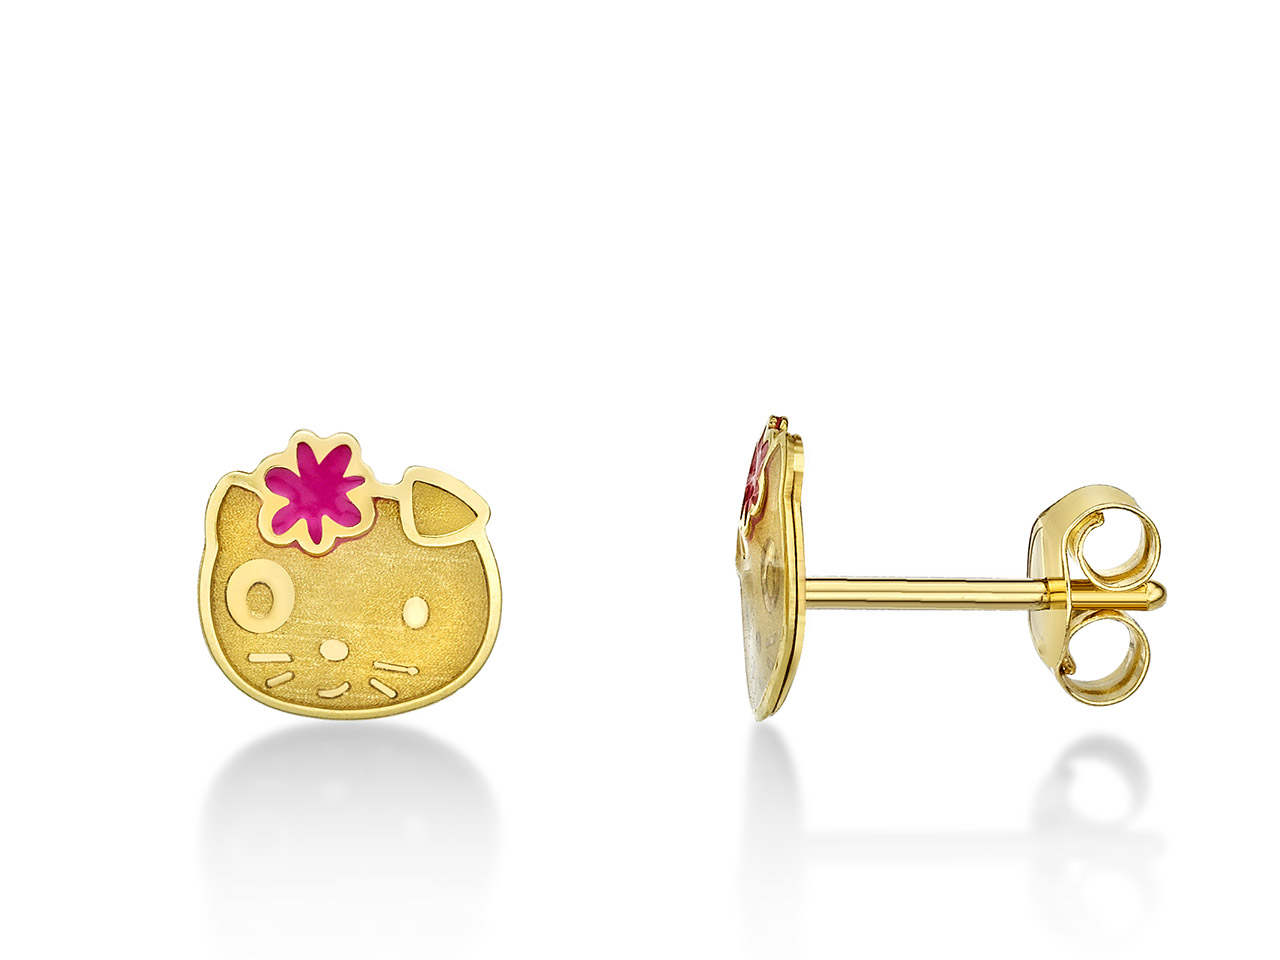 Boucles d'oreilles Hello Kitty 6,5 x 6,8 mm, Or jaune 18k